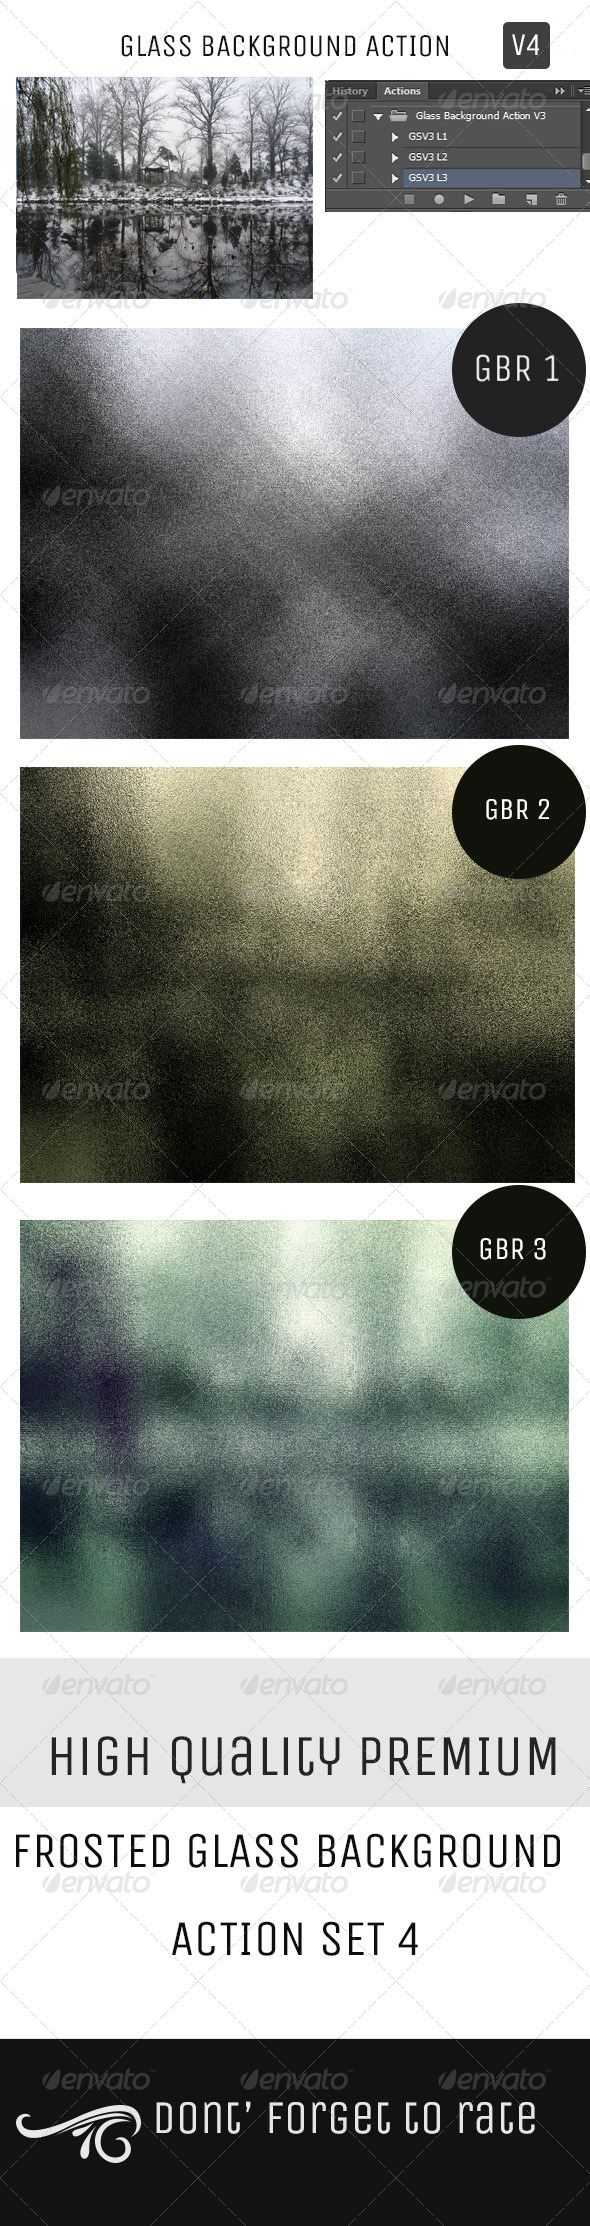 GraphicRiver Glass Background Action Set V4 5128589